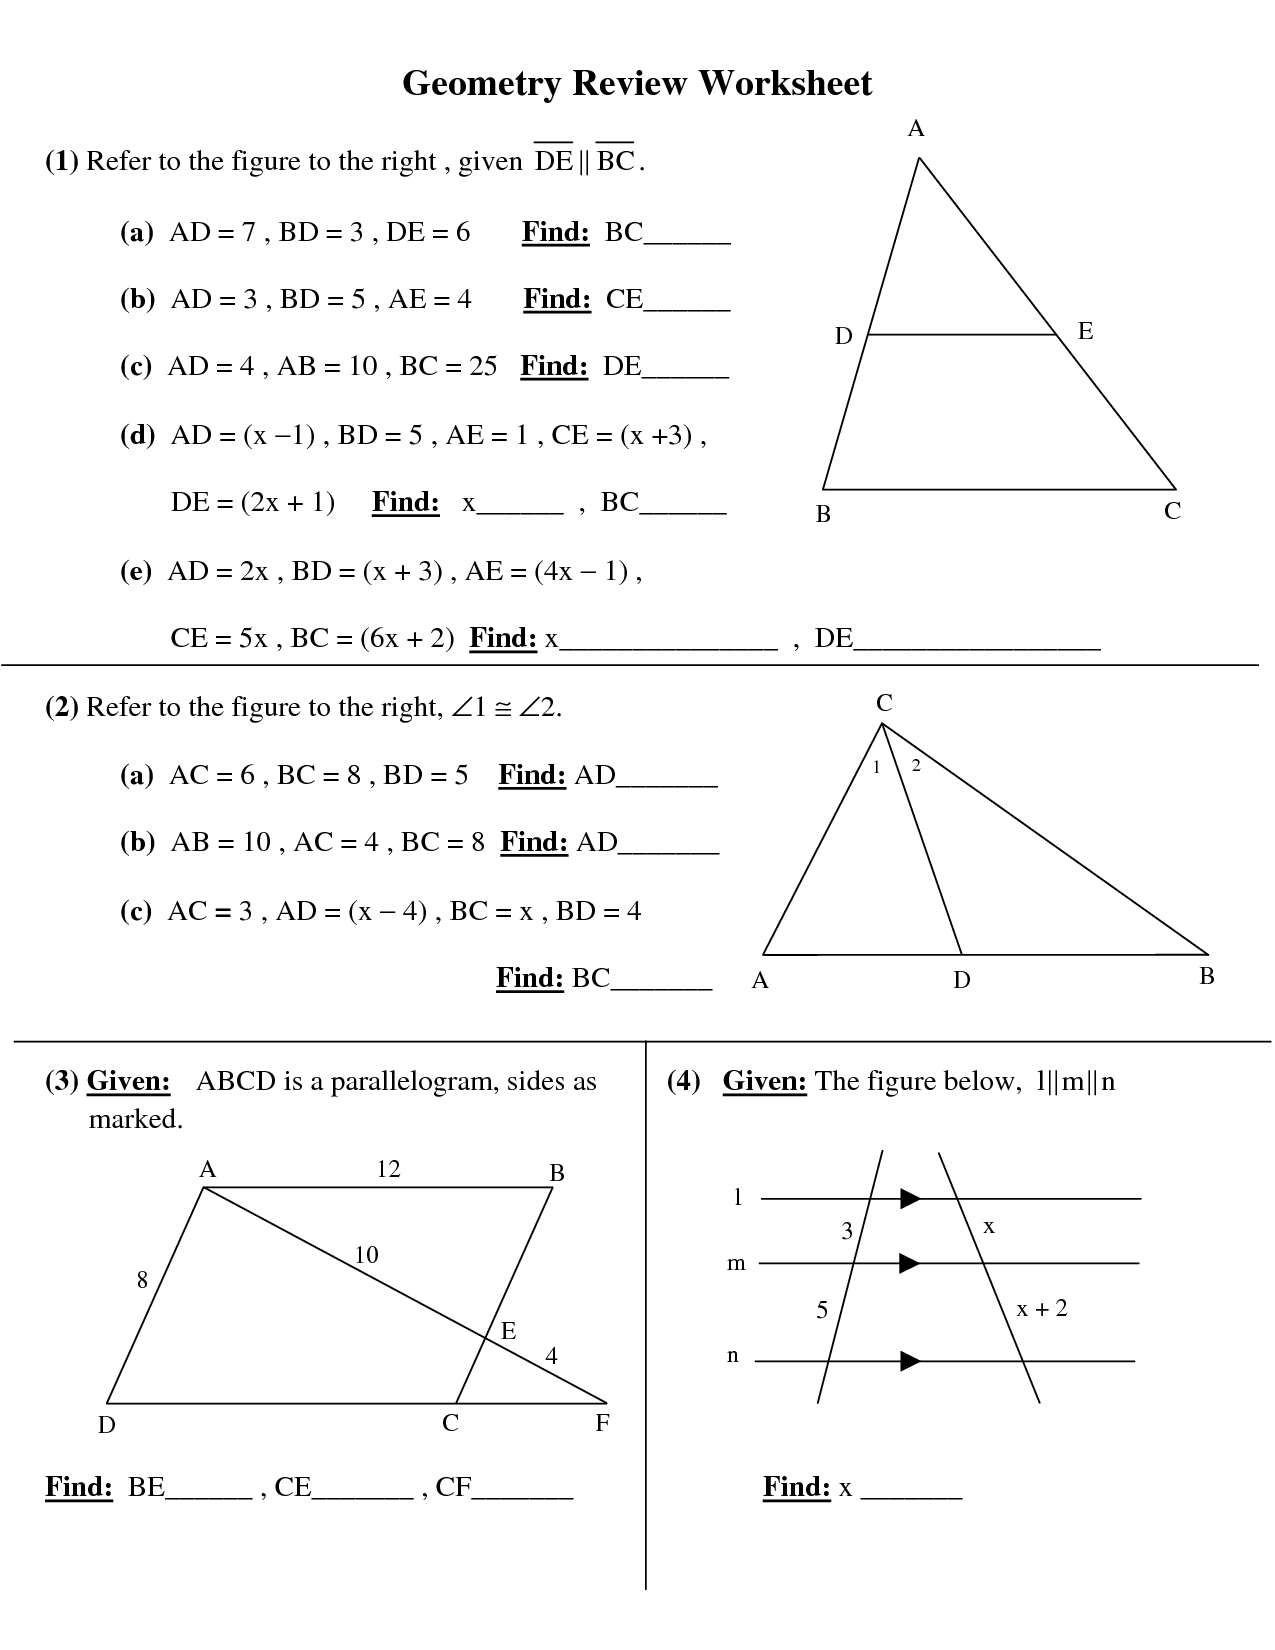 Free Worksheet High School Geometry Worksheets With Answers free high school geometry worksheets abitlikethis math printable spelling worksheets